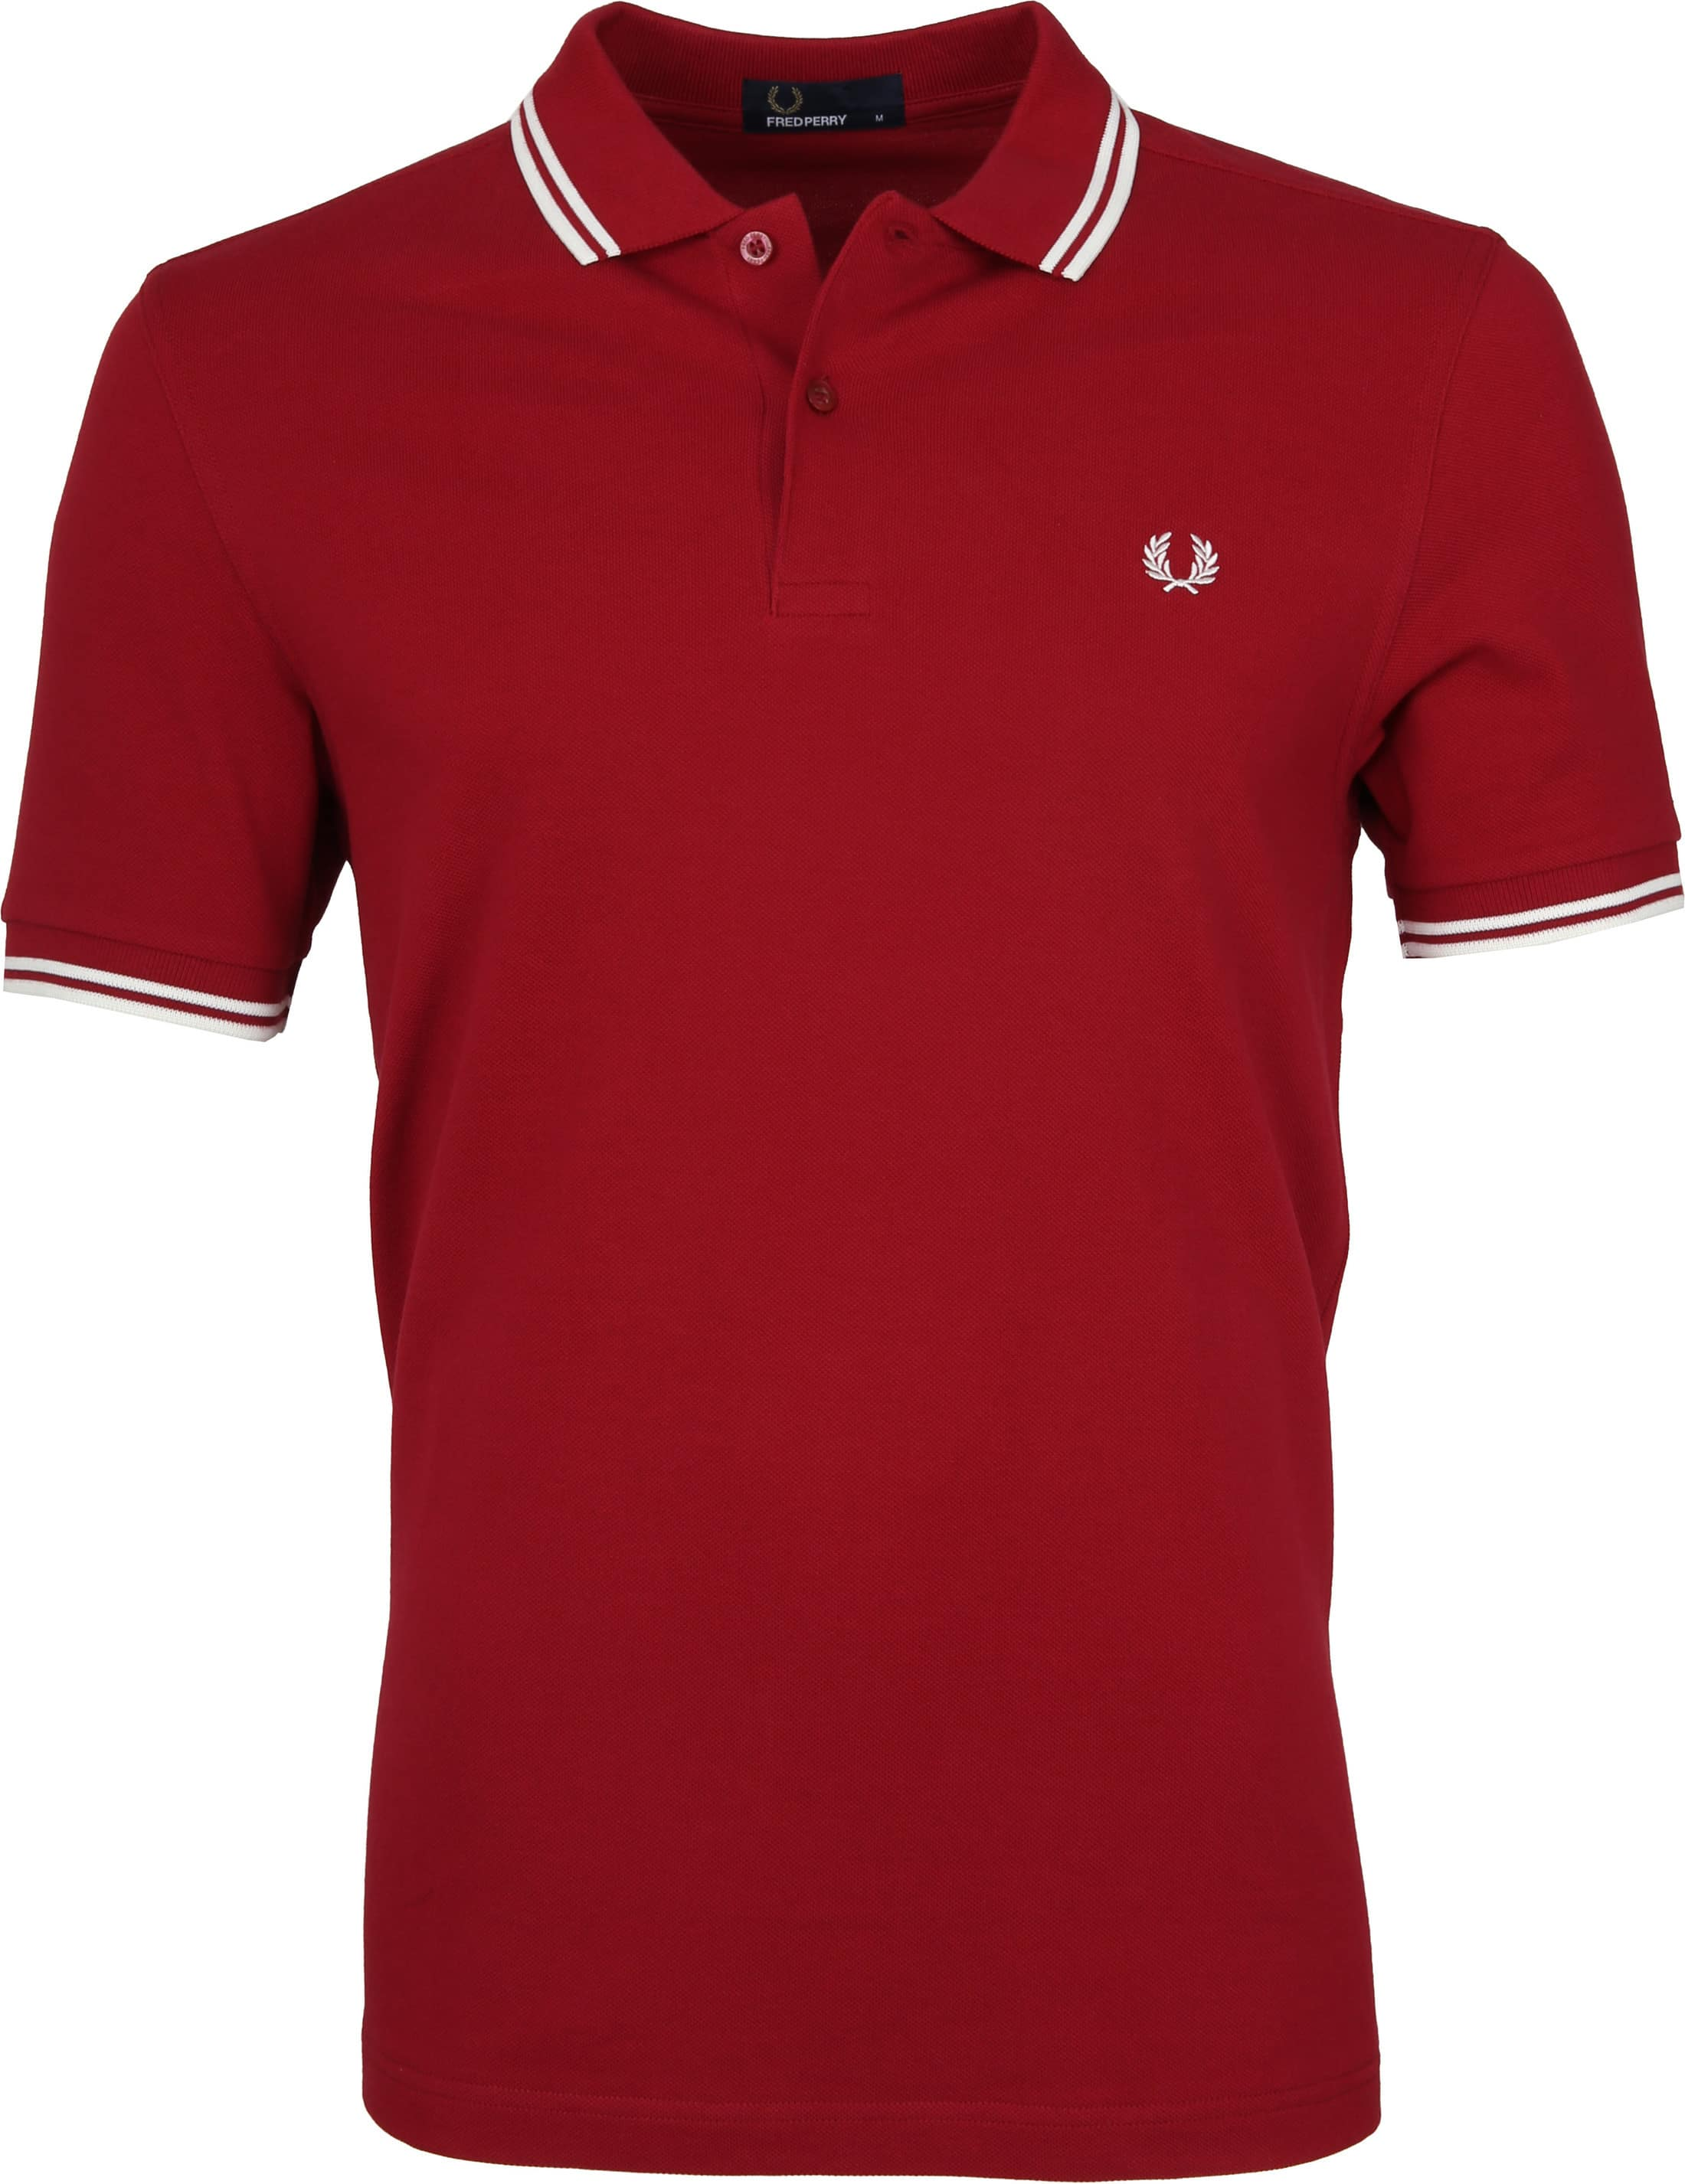 Fred Perry Poloshirt Red D75 foto 0